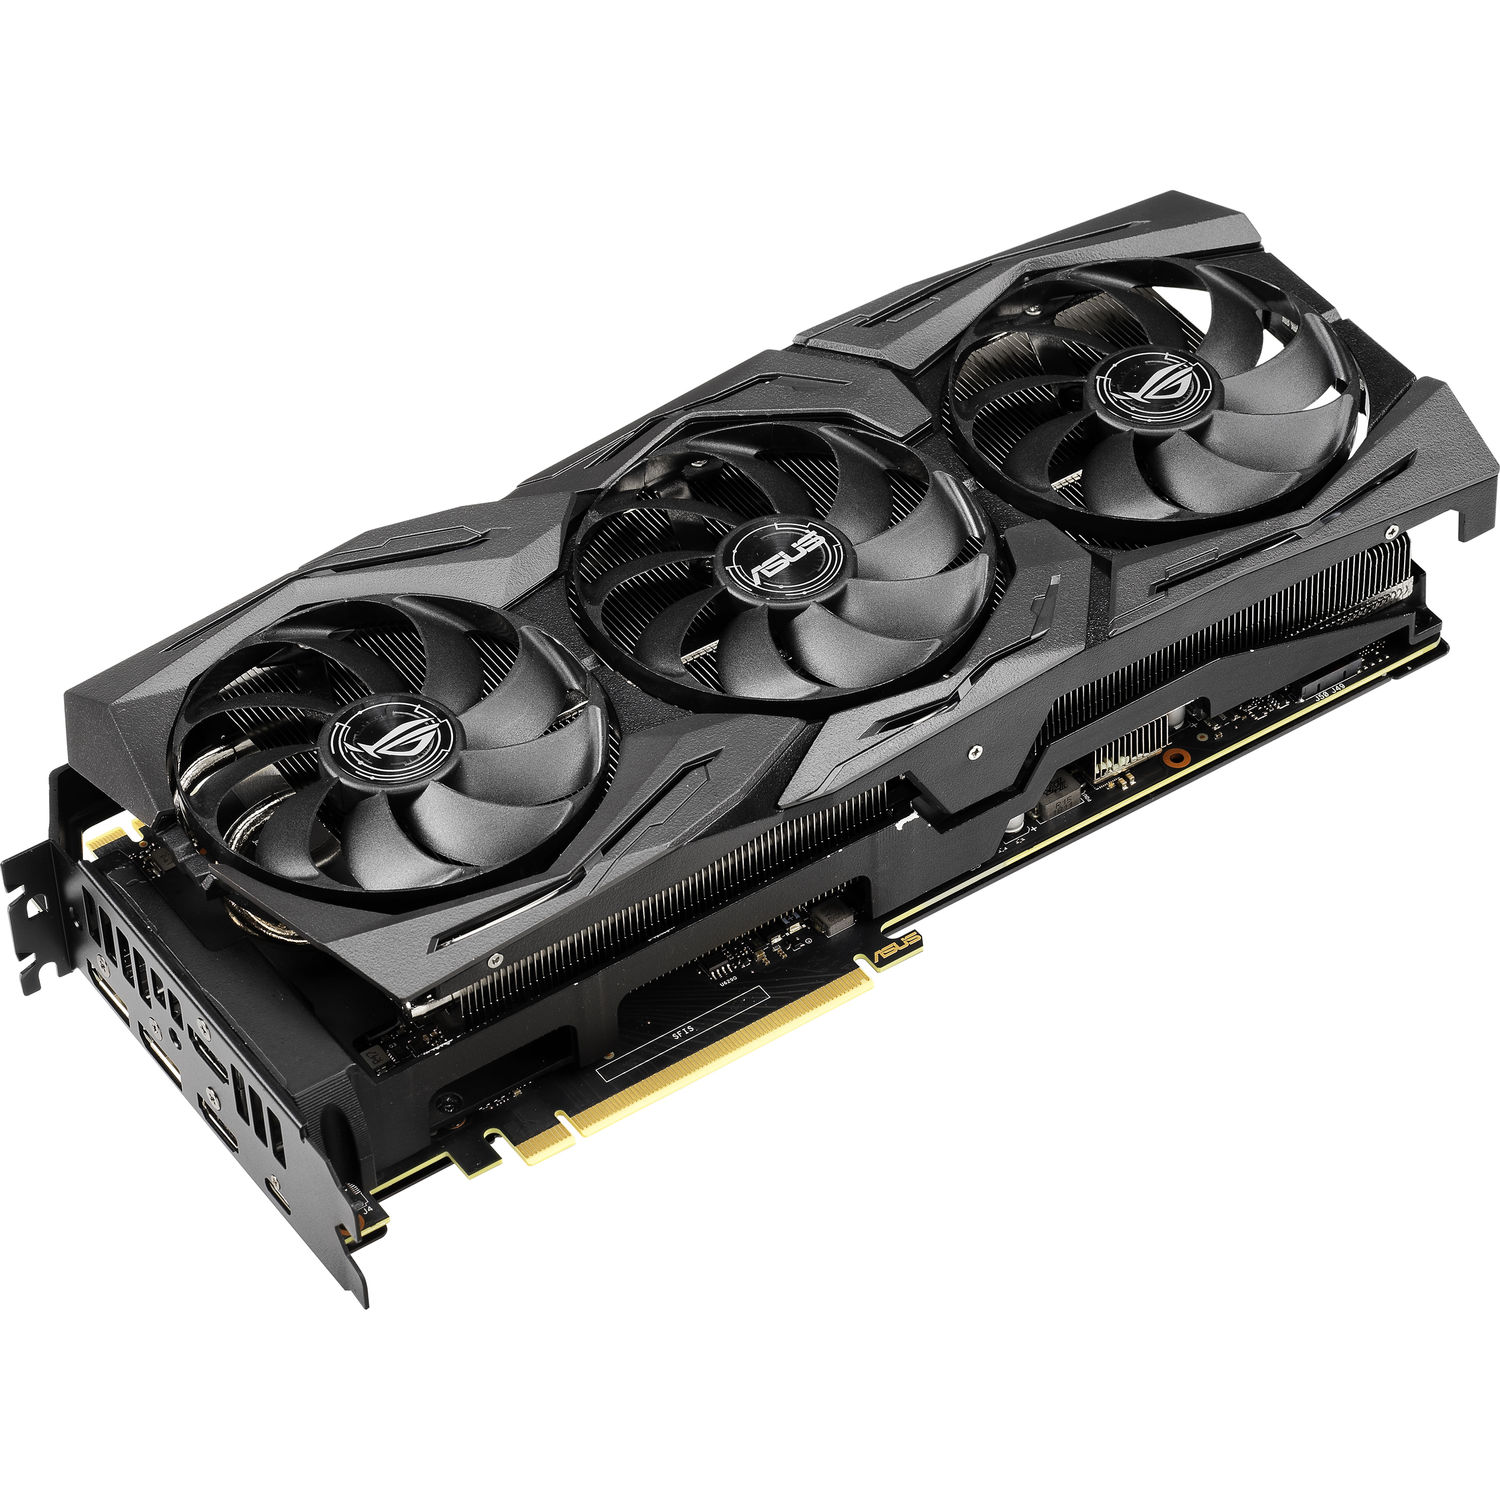 ASUS Republic of Gamers Strix GeForce RTX 2080 Ti Graphics Card